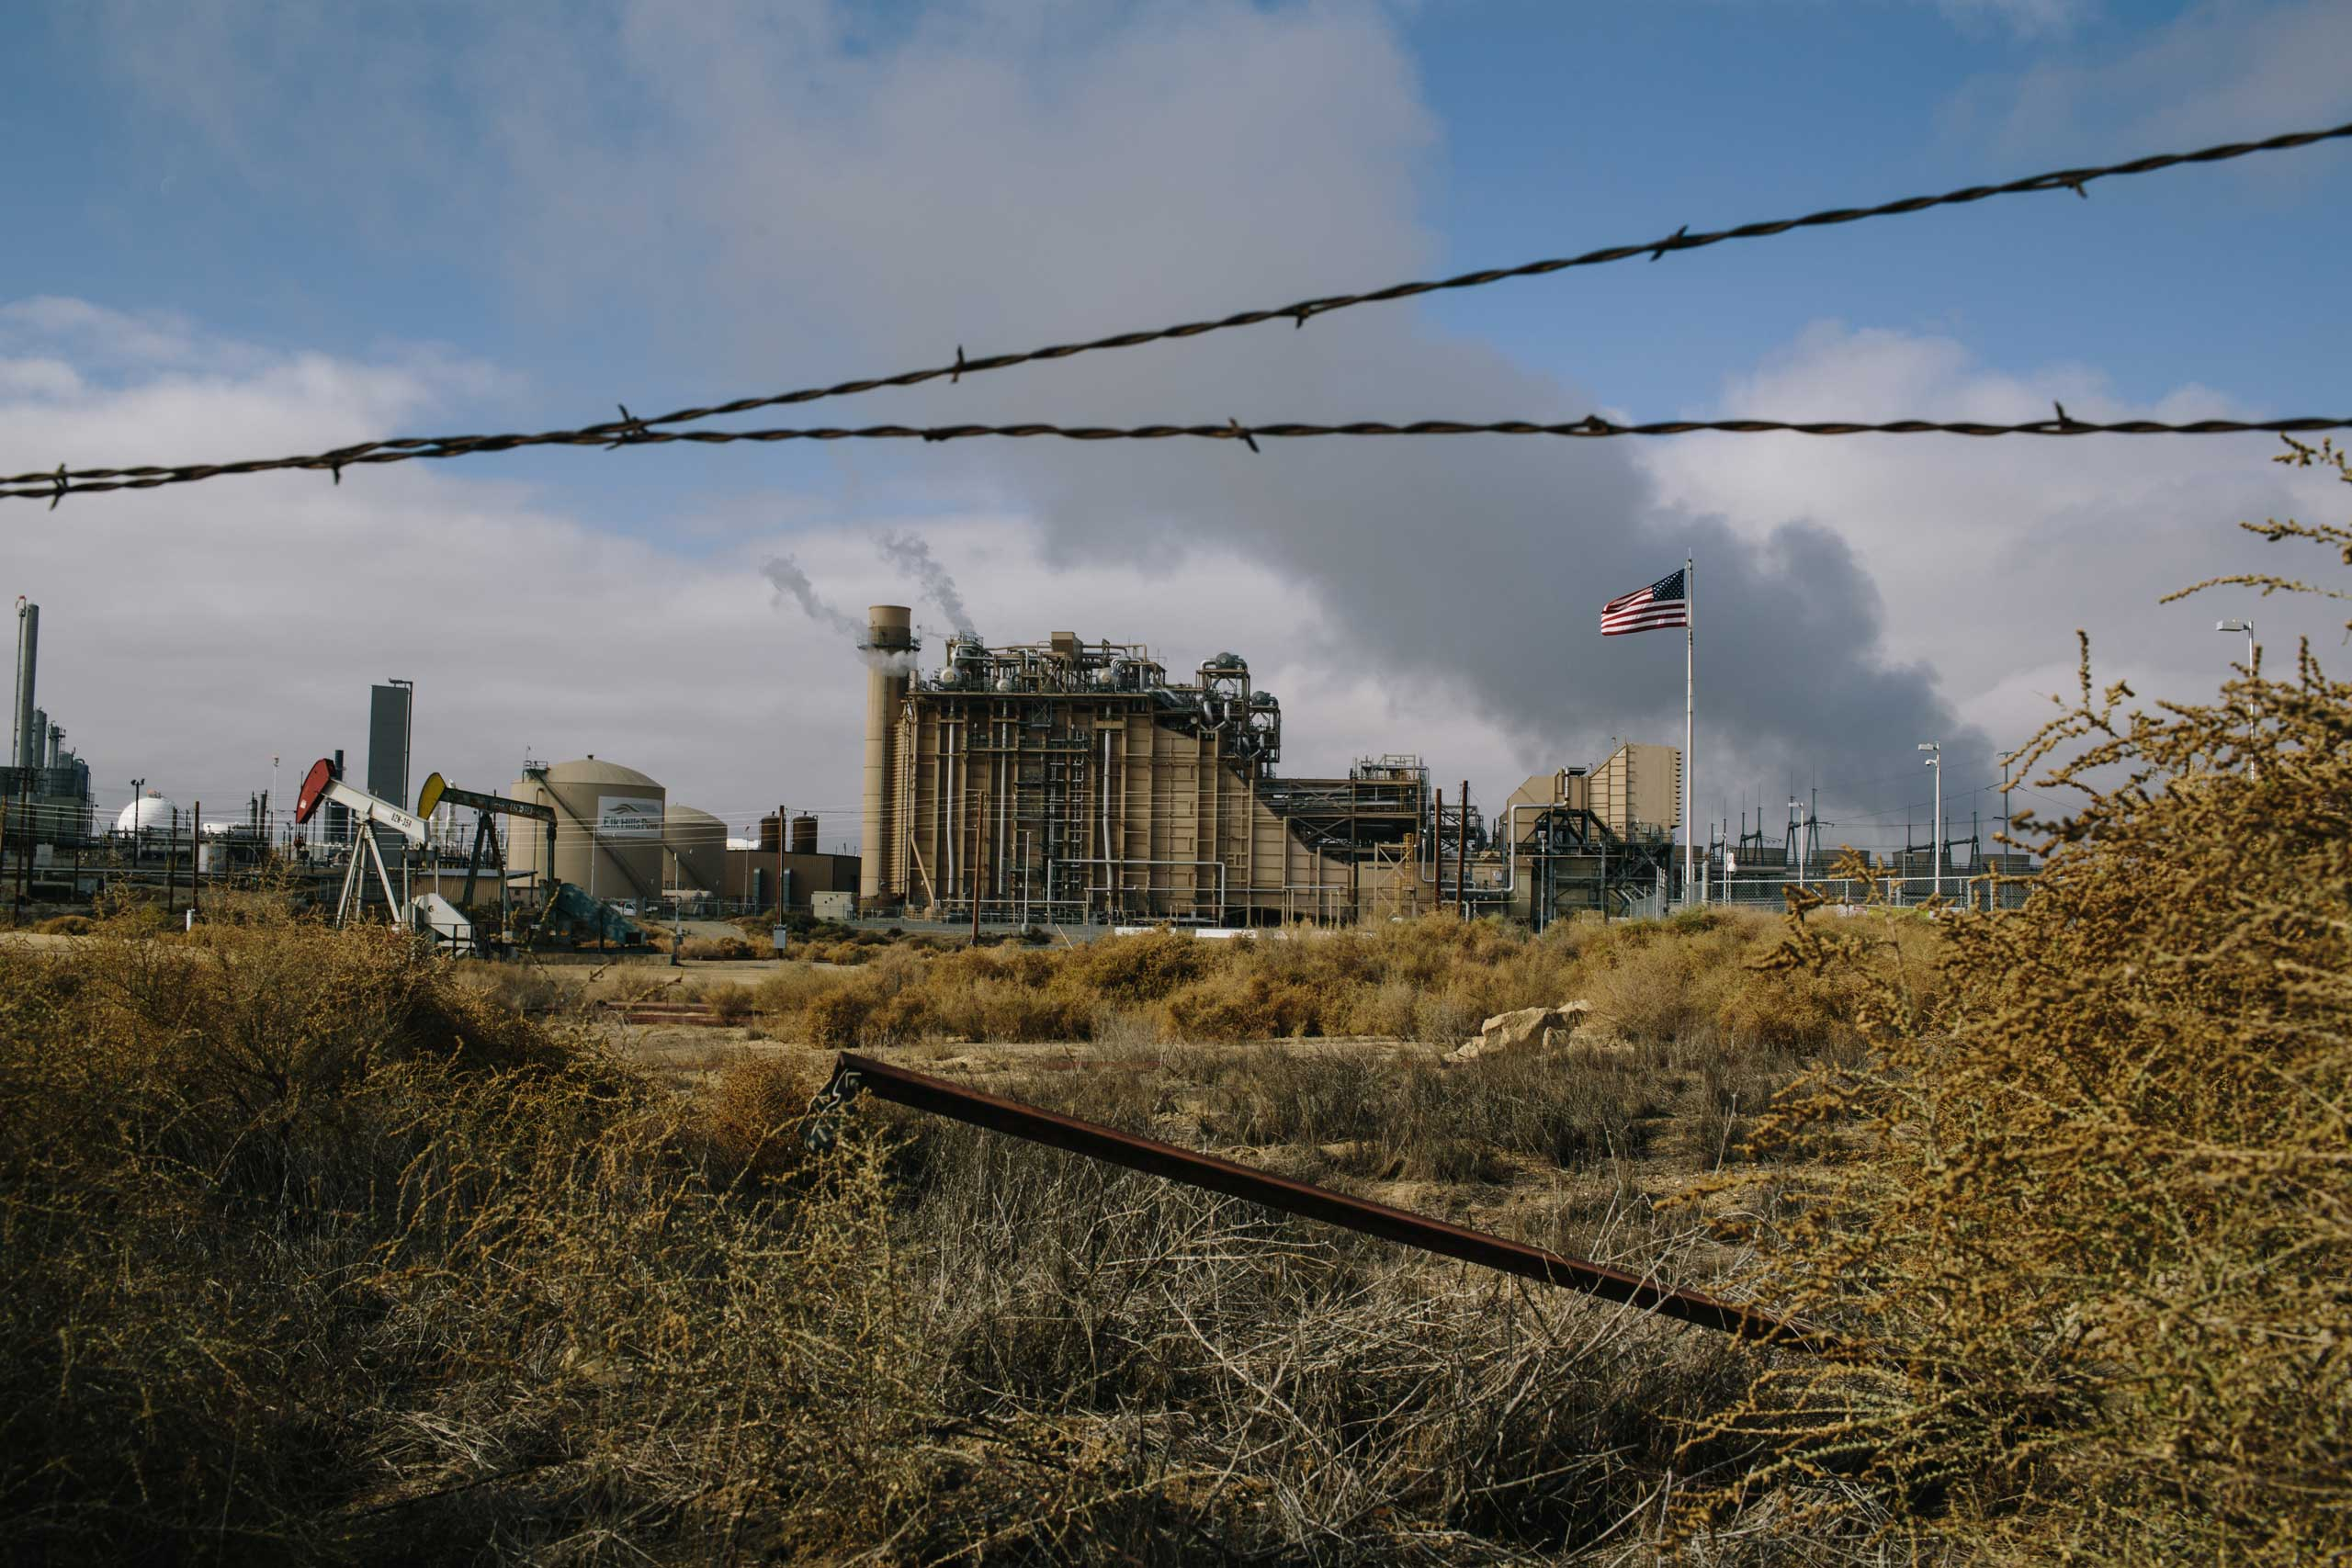 Elk Hills Power plant provides electricity to power Occidental Elk Hills oil field. Oxy's Elk Hills field is one of the largest oil fields in the United States and the natural gas power plant can produce 550 megawatts of electricity.